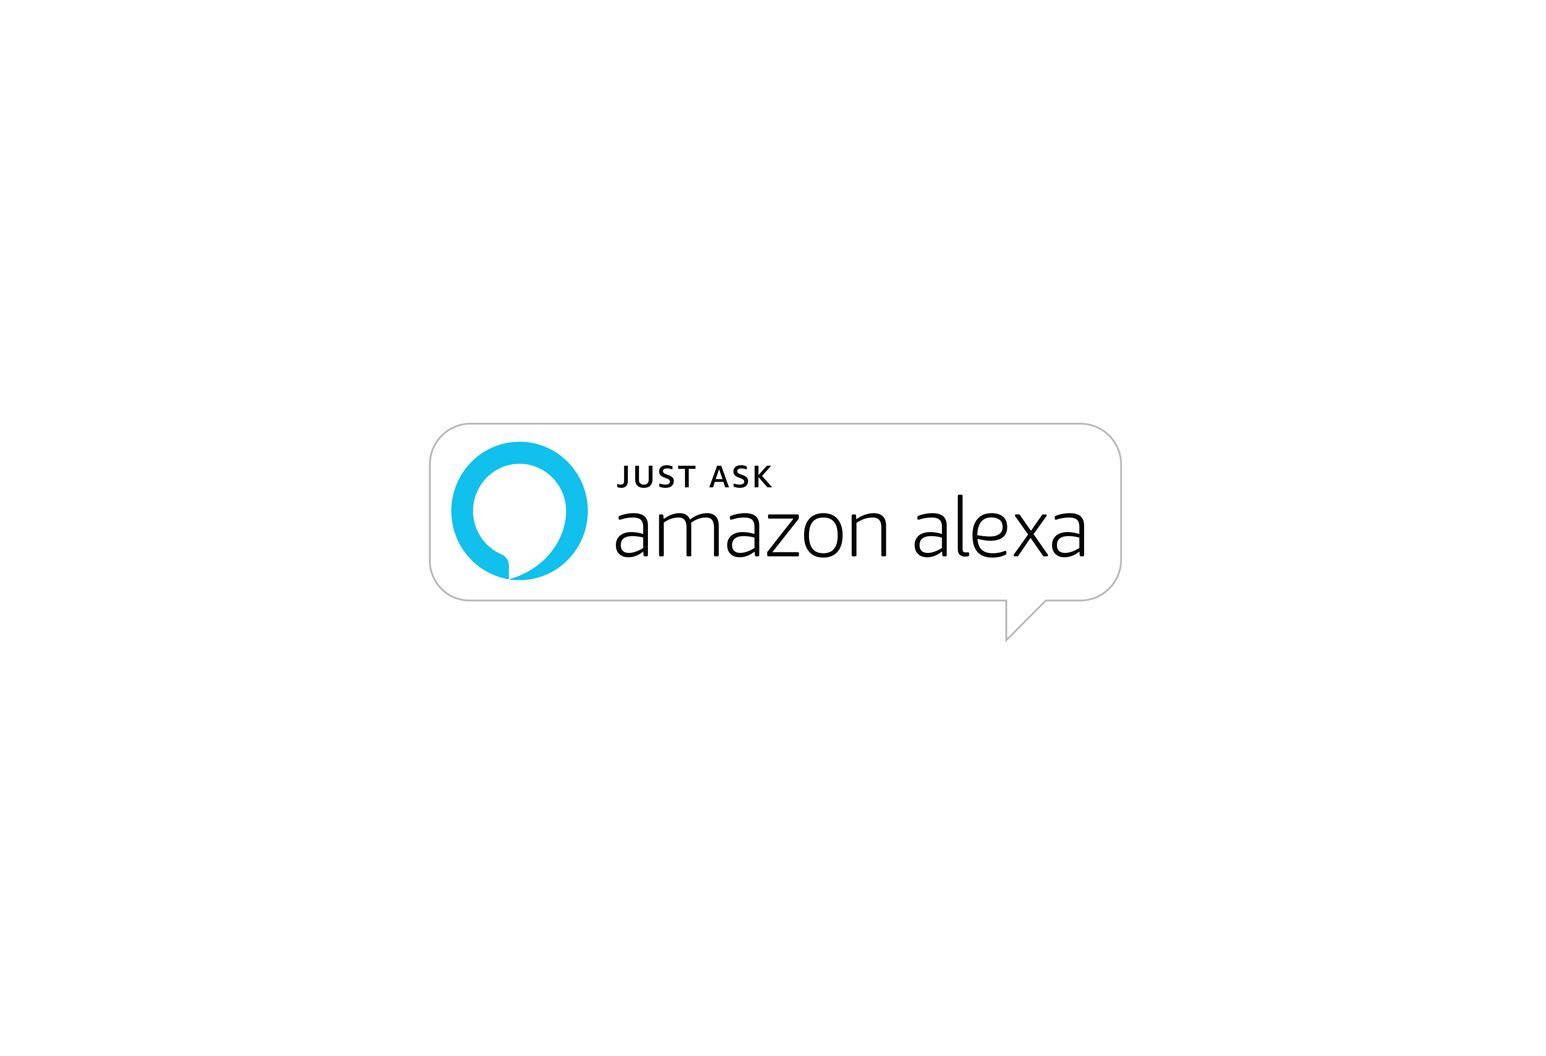 """just ask amazon alexa"" written in speech bubble"